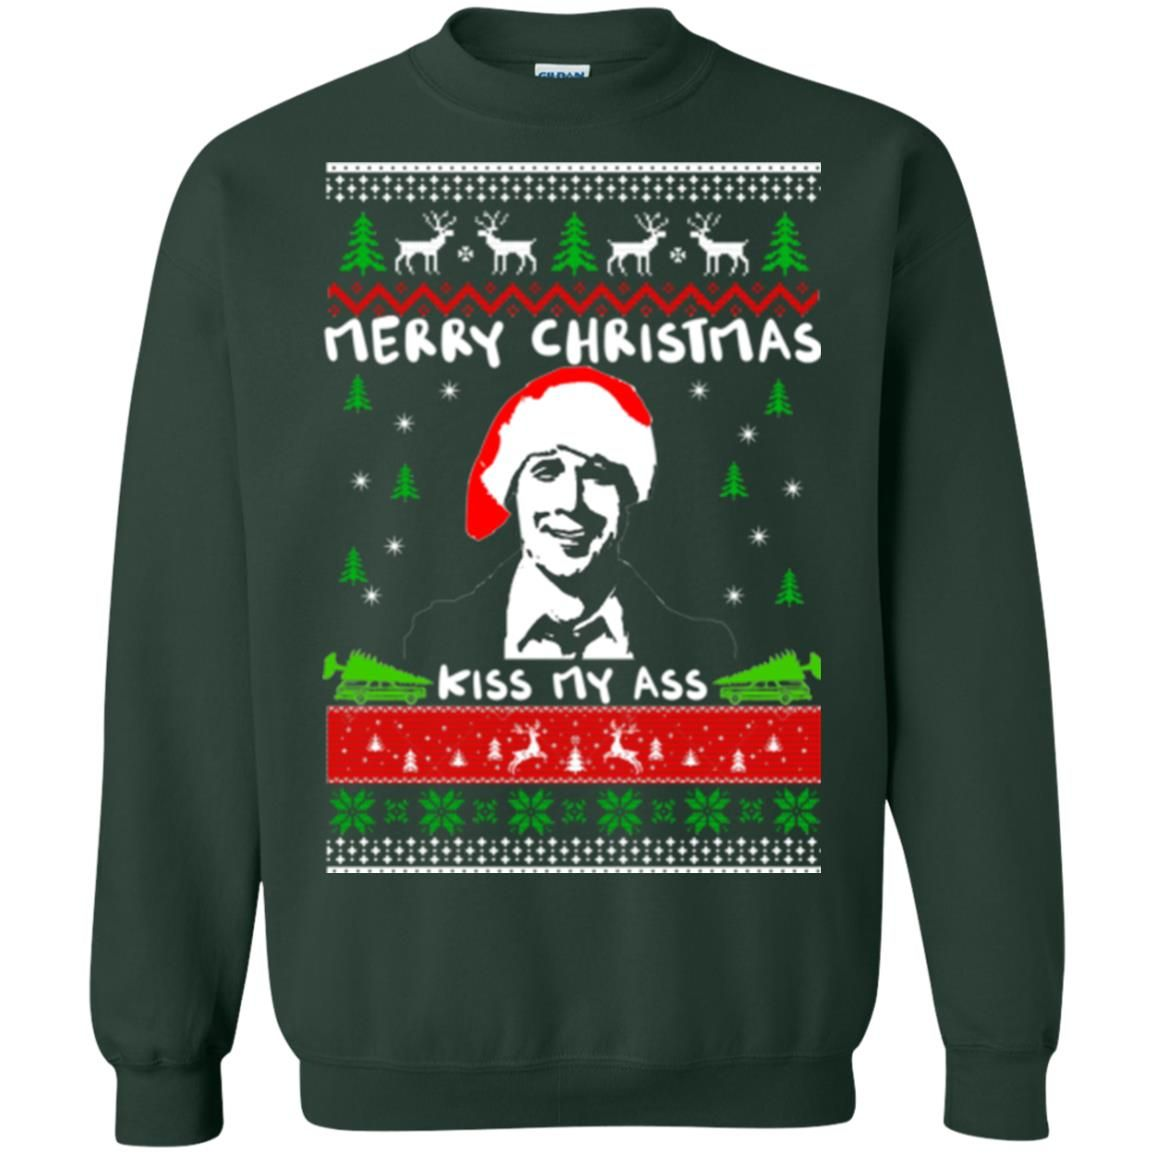 image 1702 - Clark Griswold: Merry Christmas kiss my ass sweater, hoodie, long sleeve